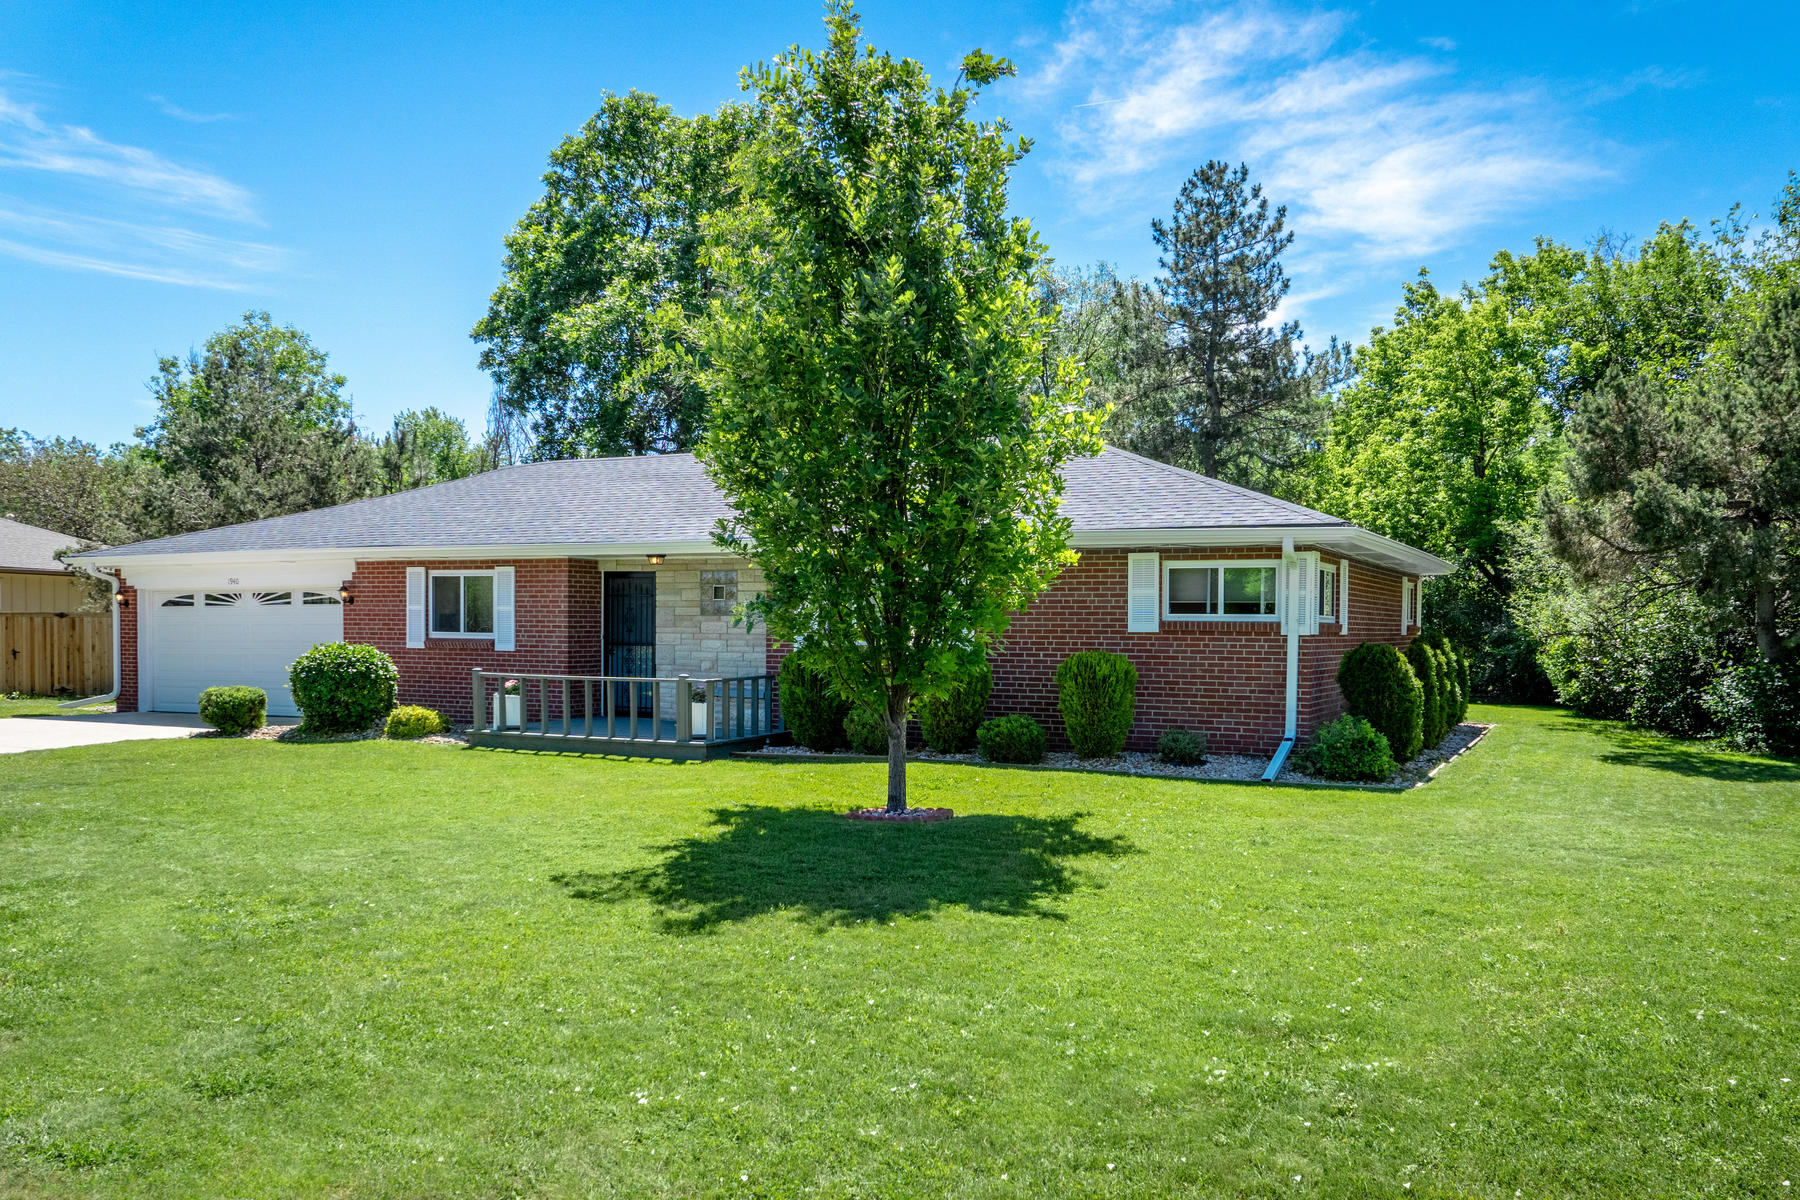 Single Family Home for Active at 1940 Willow Lane Lakewood, Colorado 80215 United States